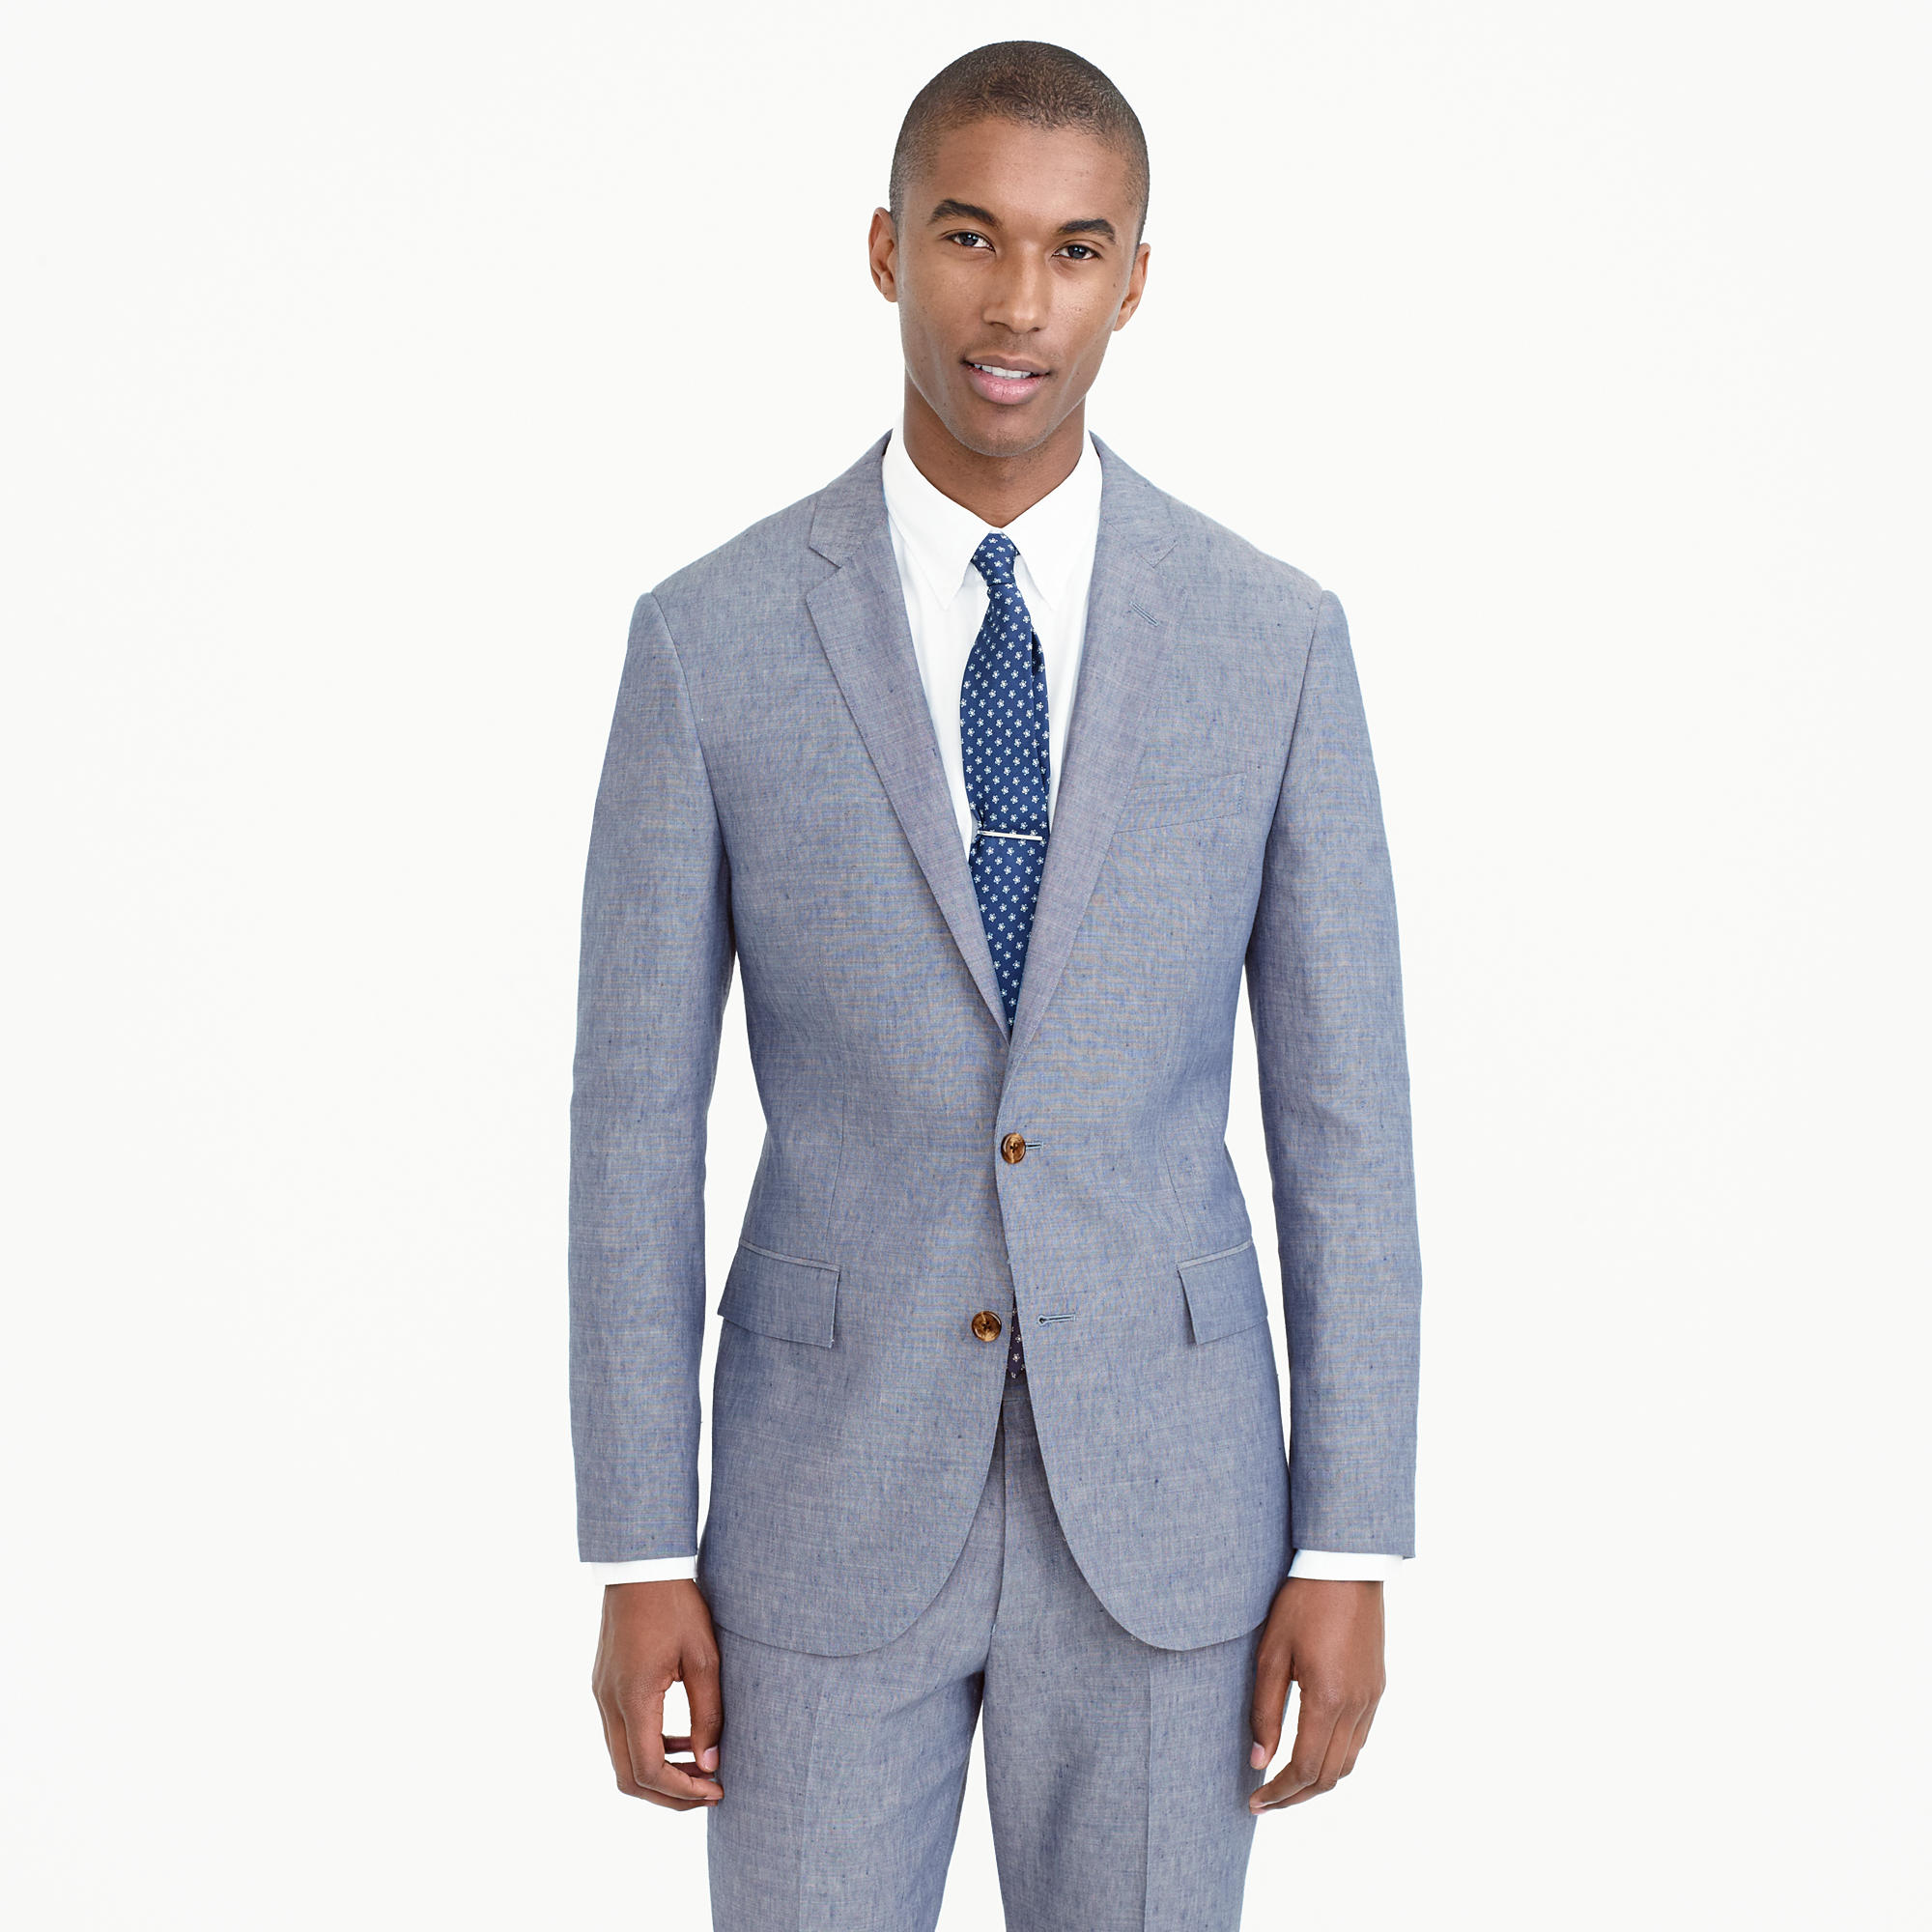 Ludlow suit jacket in Italian wool-linen : Men suits & tuxedos | J ...